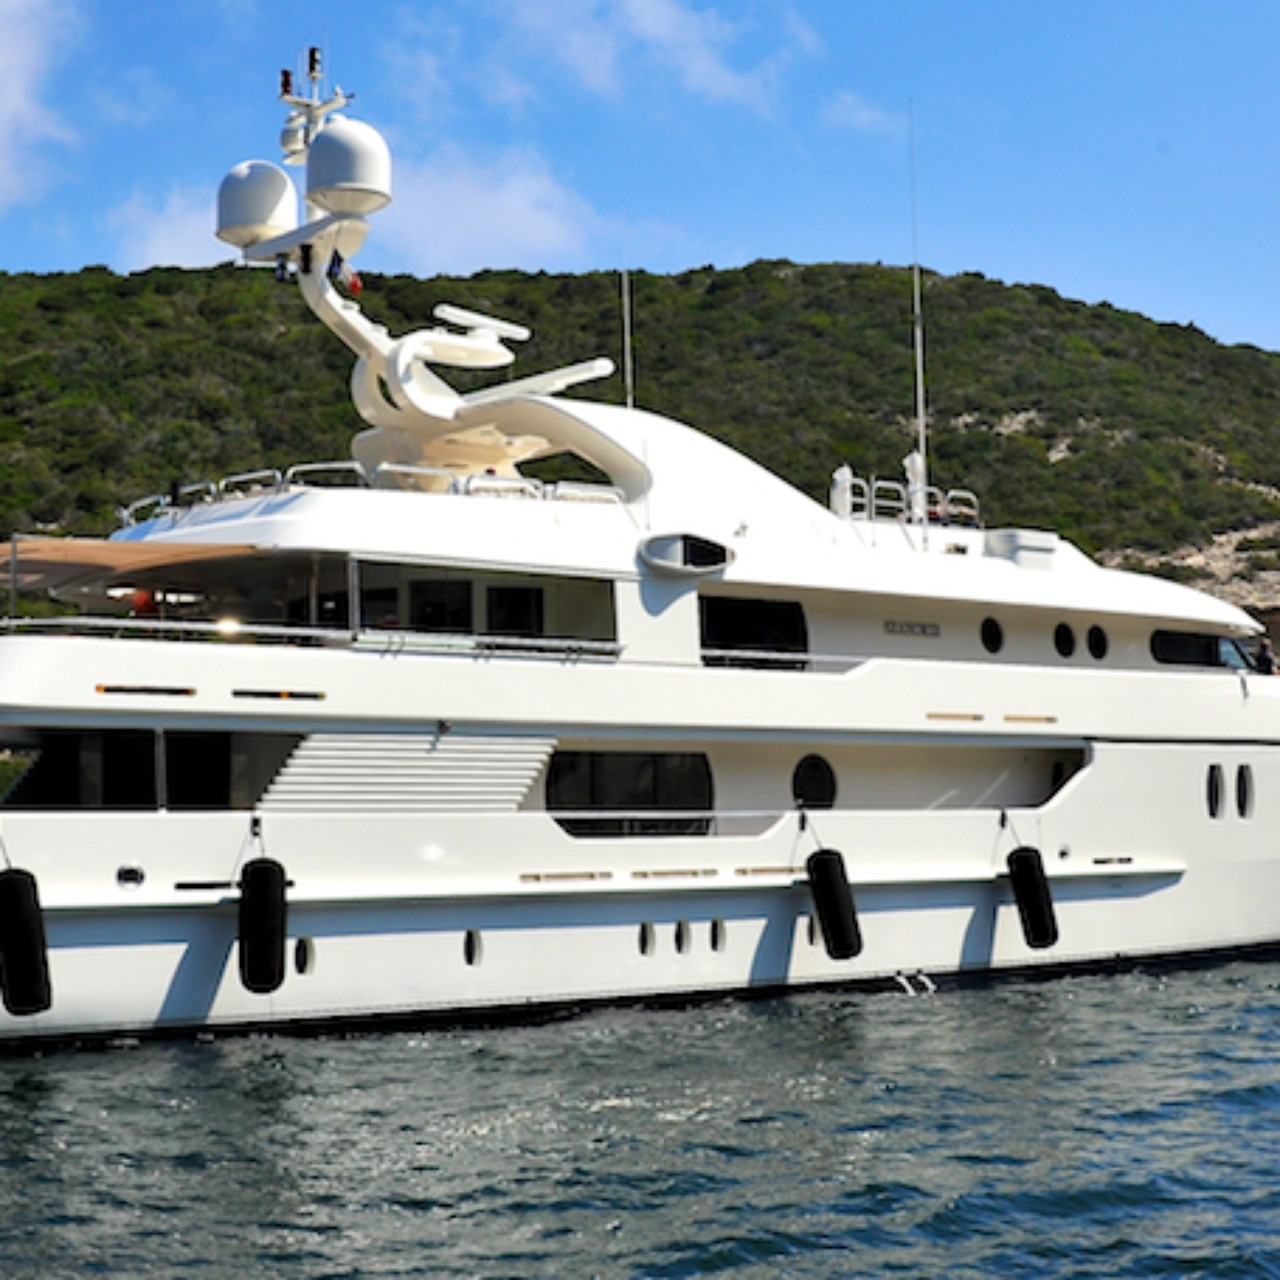 Large Boat Fenders : Super yacht fenders large rubber